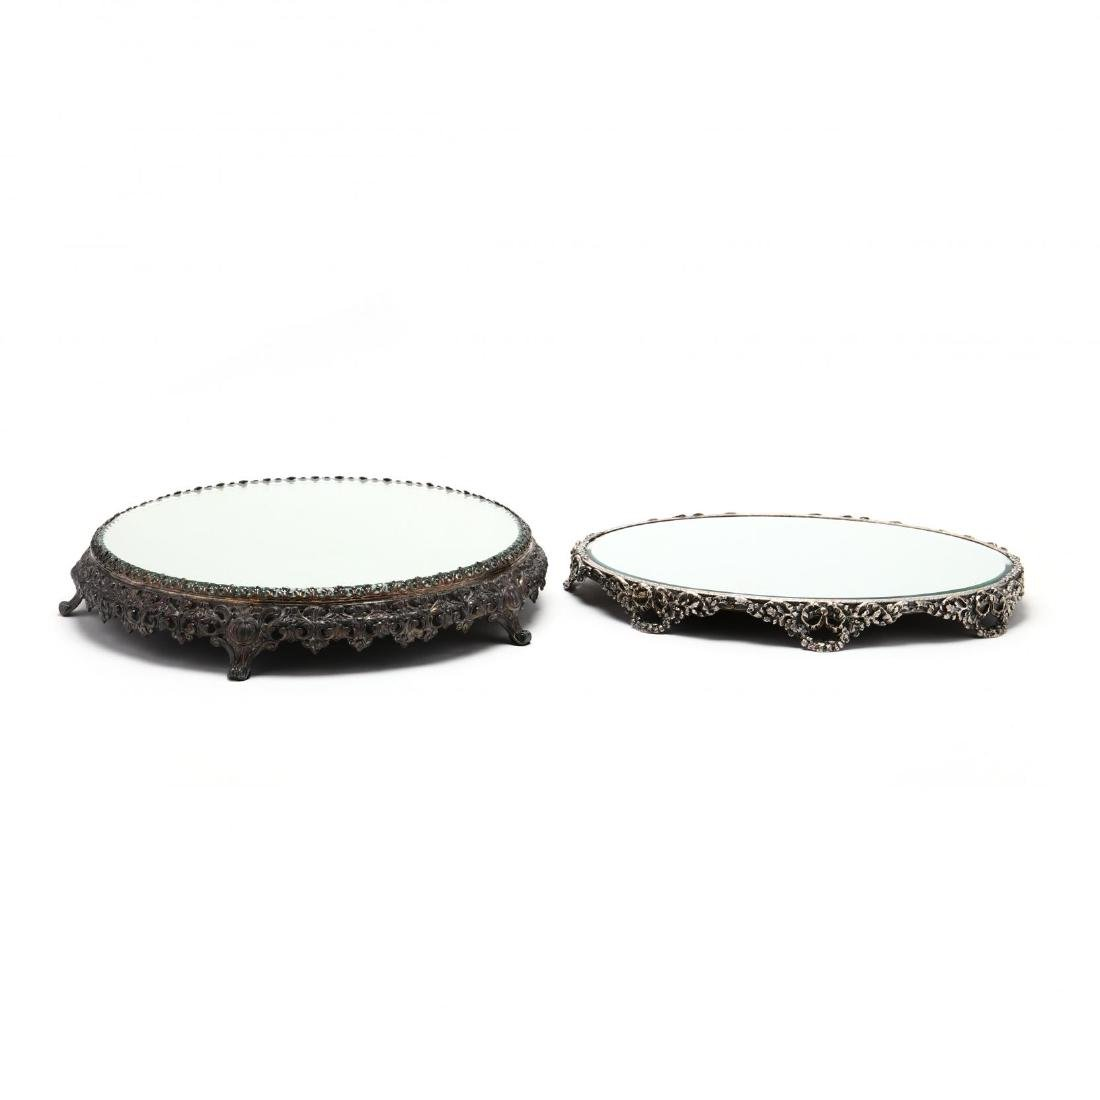 Two Vintage Silverplate Mirrored Plateaus